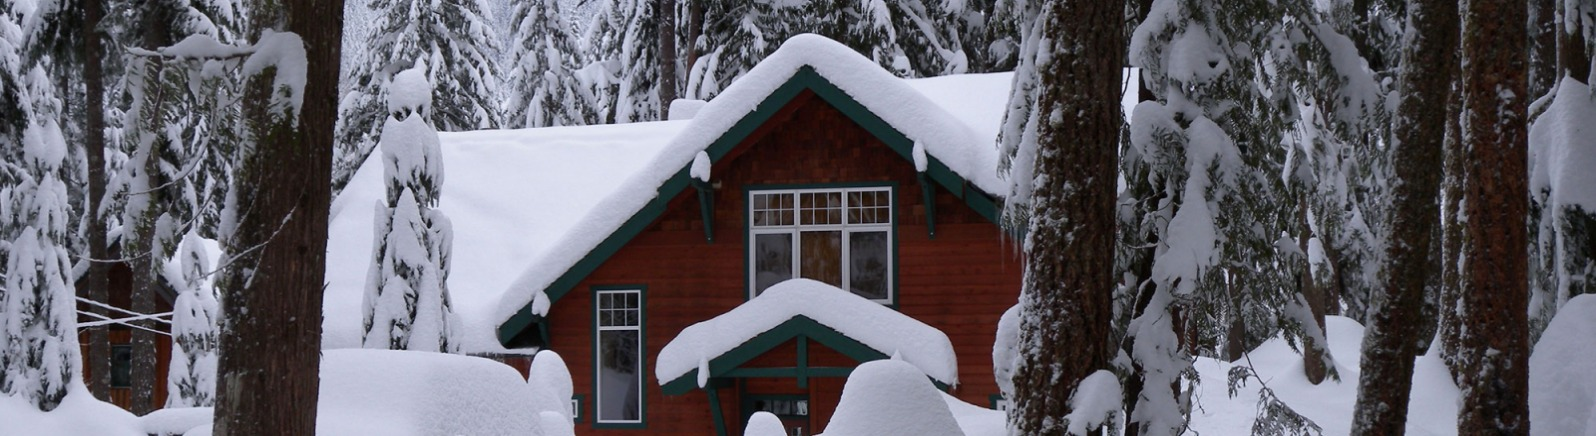 Deep, deep snow covers the roof of the cozy red rental cabin, SUV and forest floor deep in the Mt. Hood National Forest